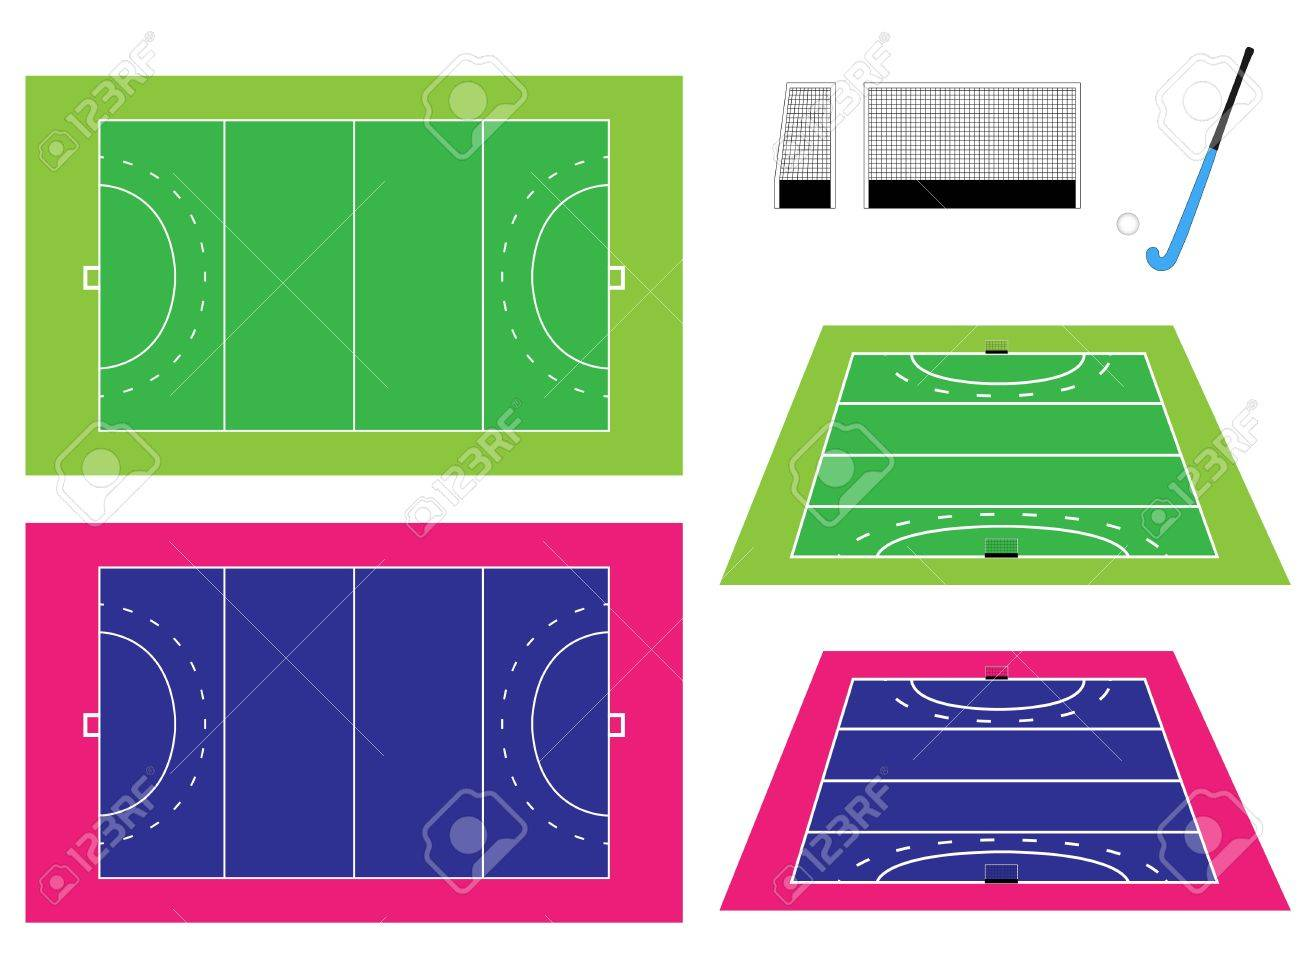 Hockey Field with Perspective Stock Vector - 15401212